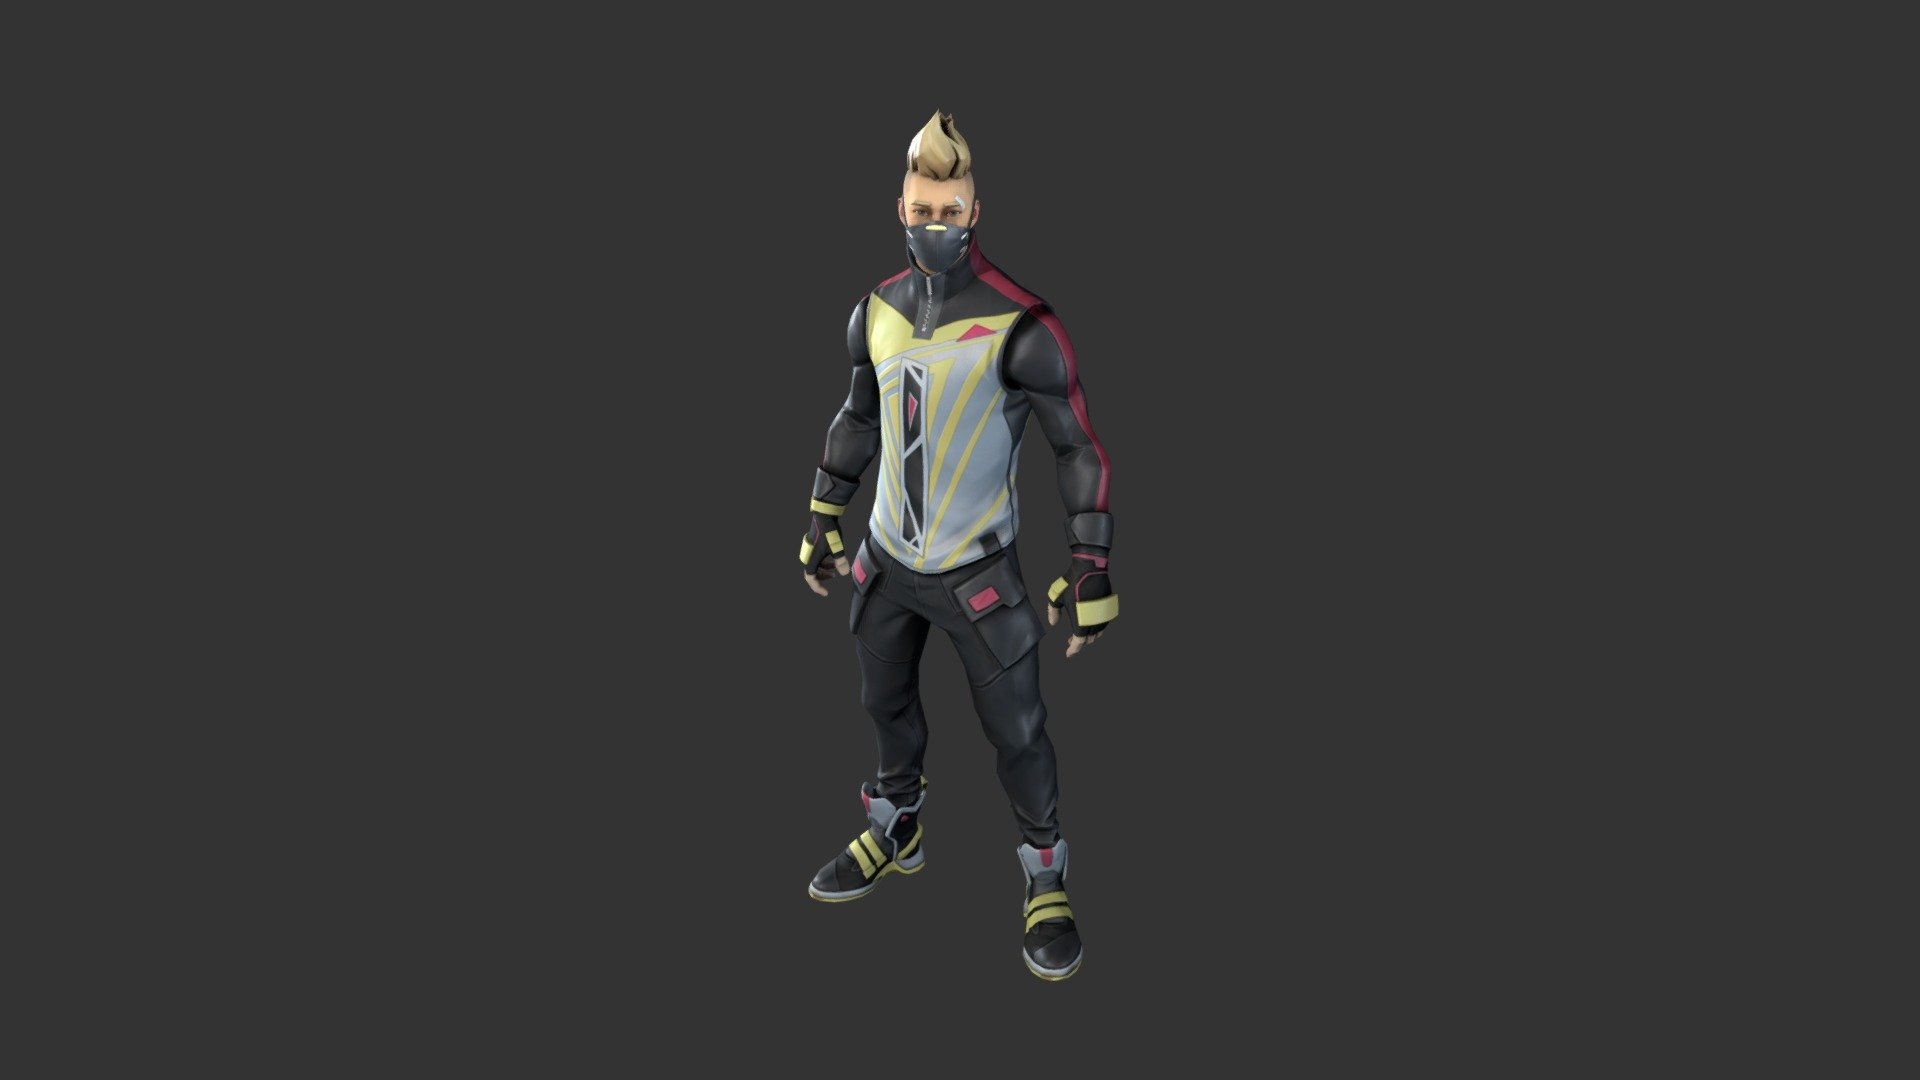 Drift Outfit Stage 2 3d Model By Fortnite Skins